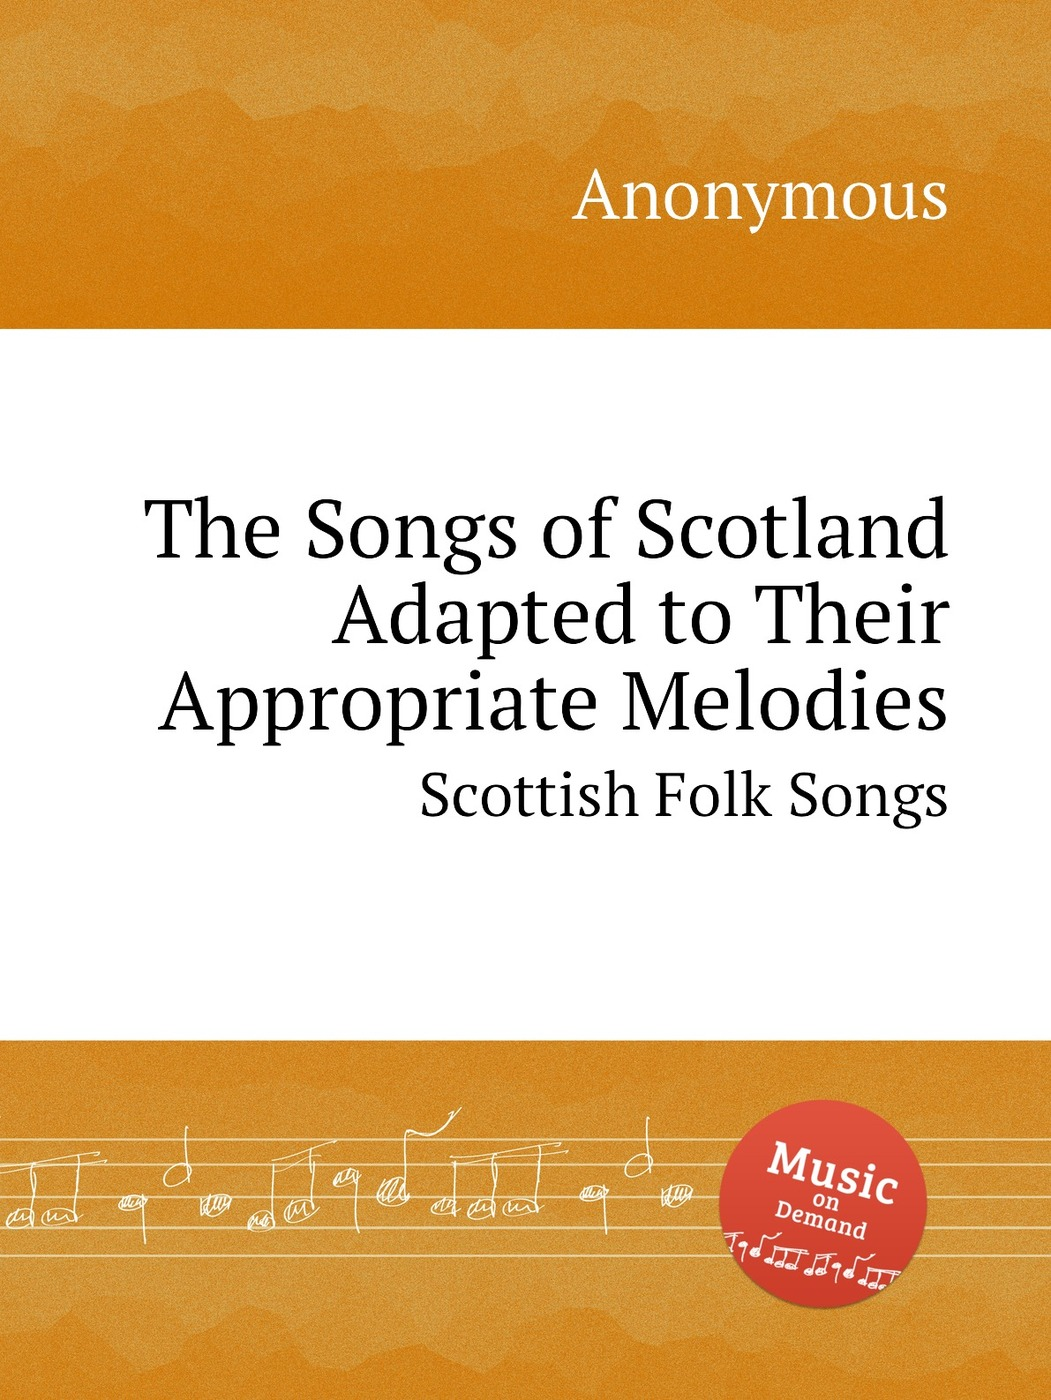 The Songs of Scotland Adapted to Their Appropriate Melodies. Scottish Folk Songs 9785884610477